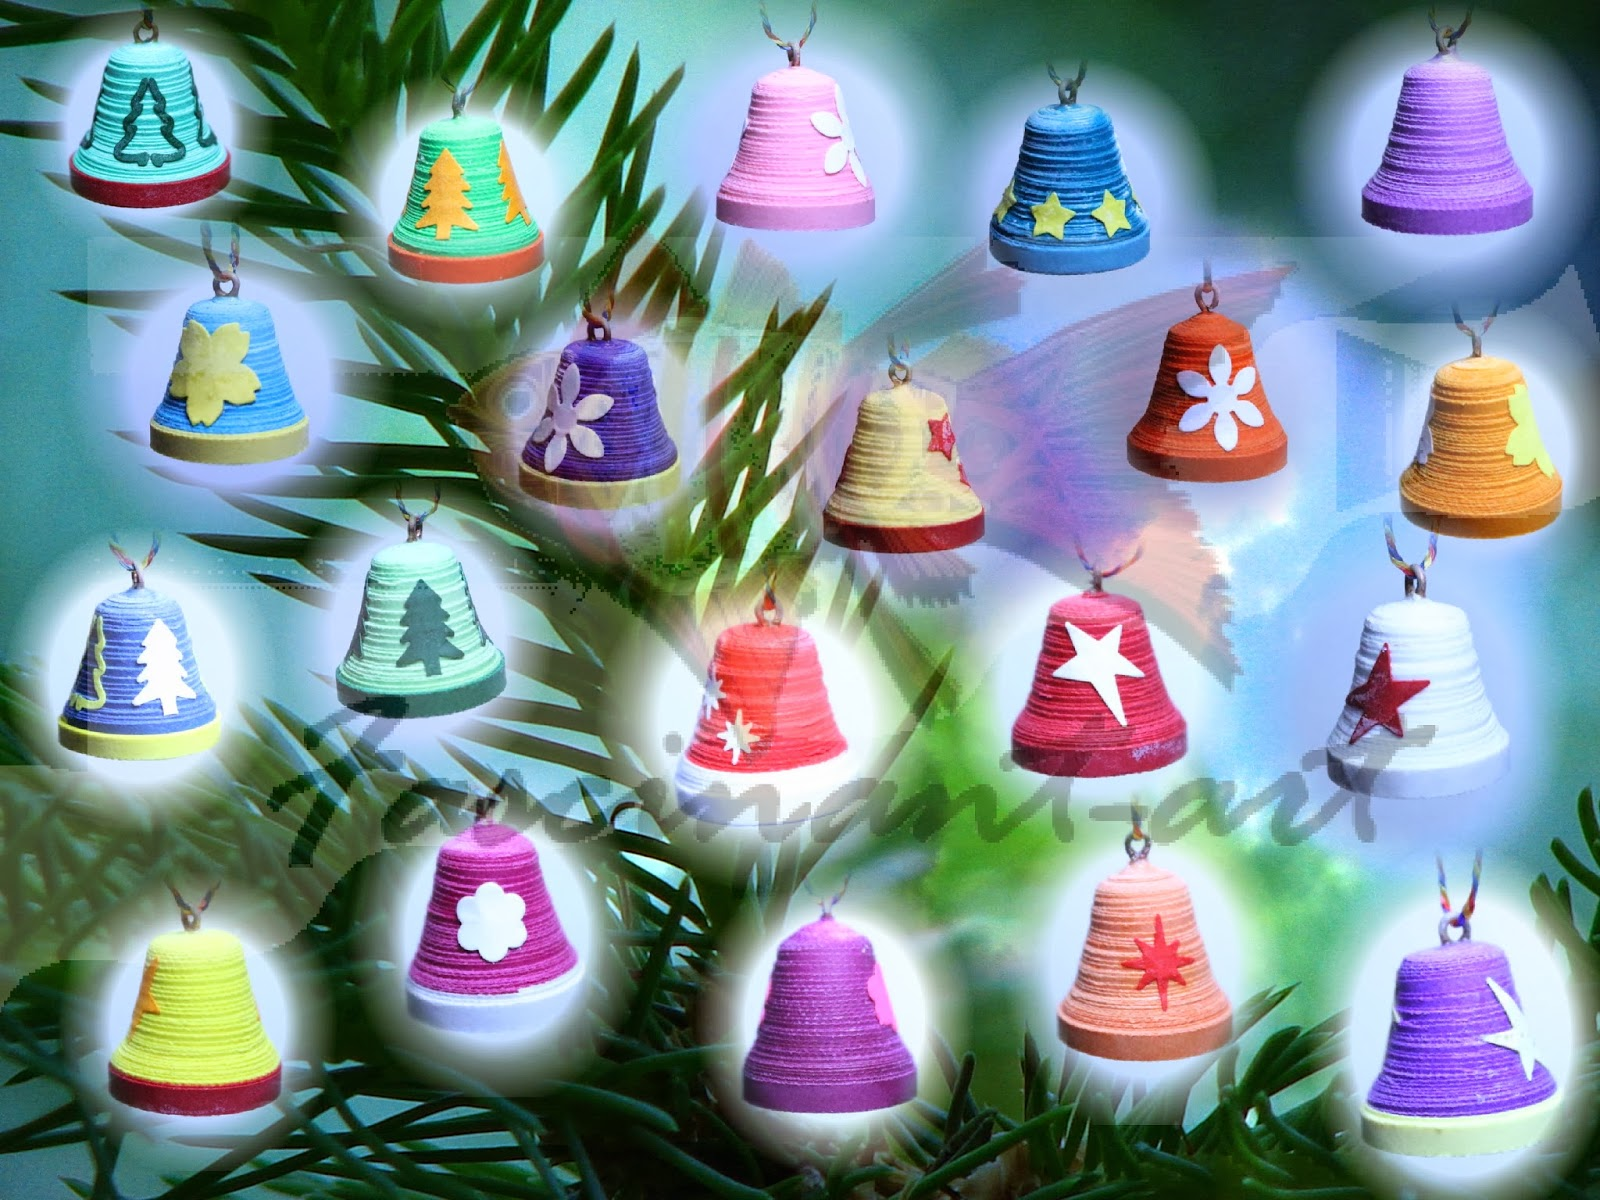 ... : Christmas ornaments & decorations - Christmas tree quilled bells